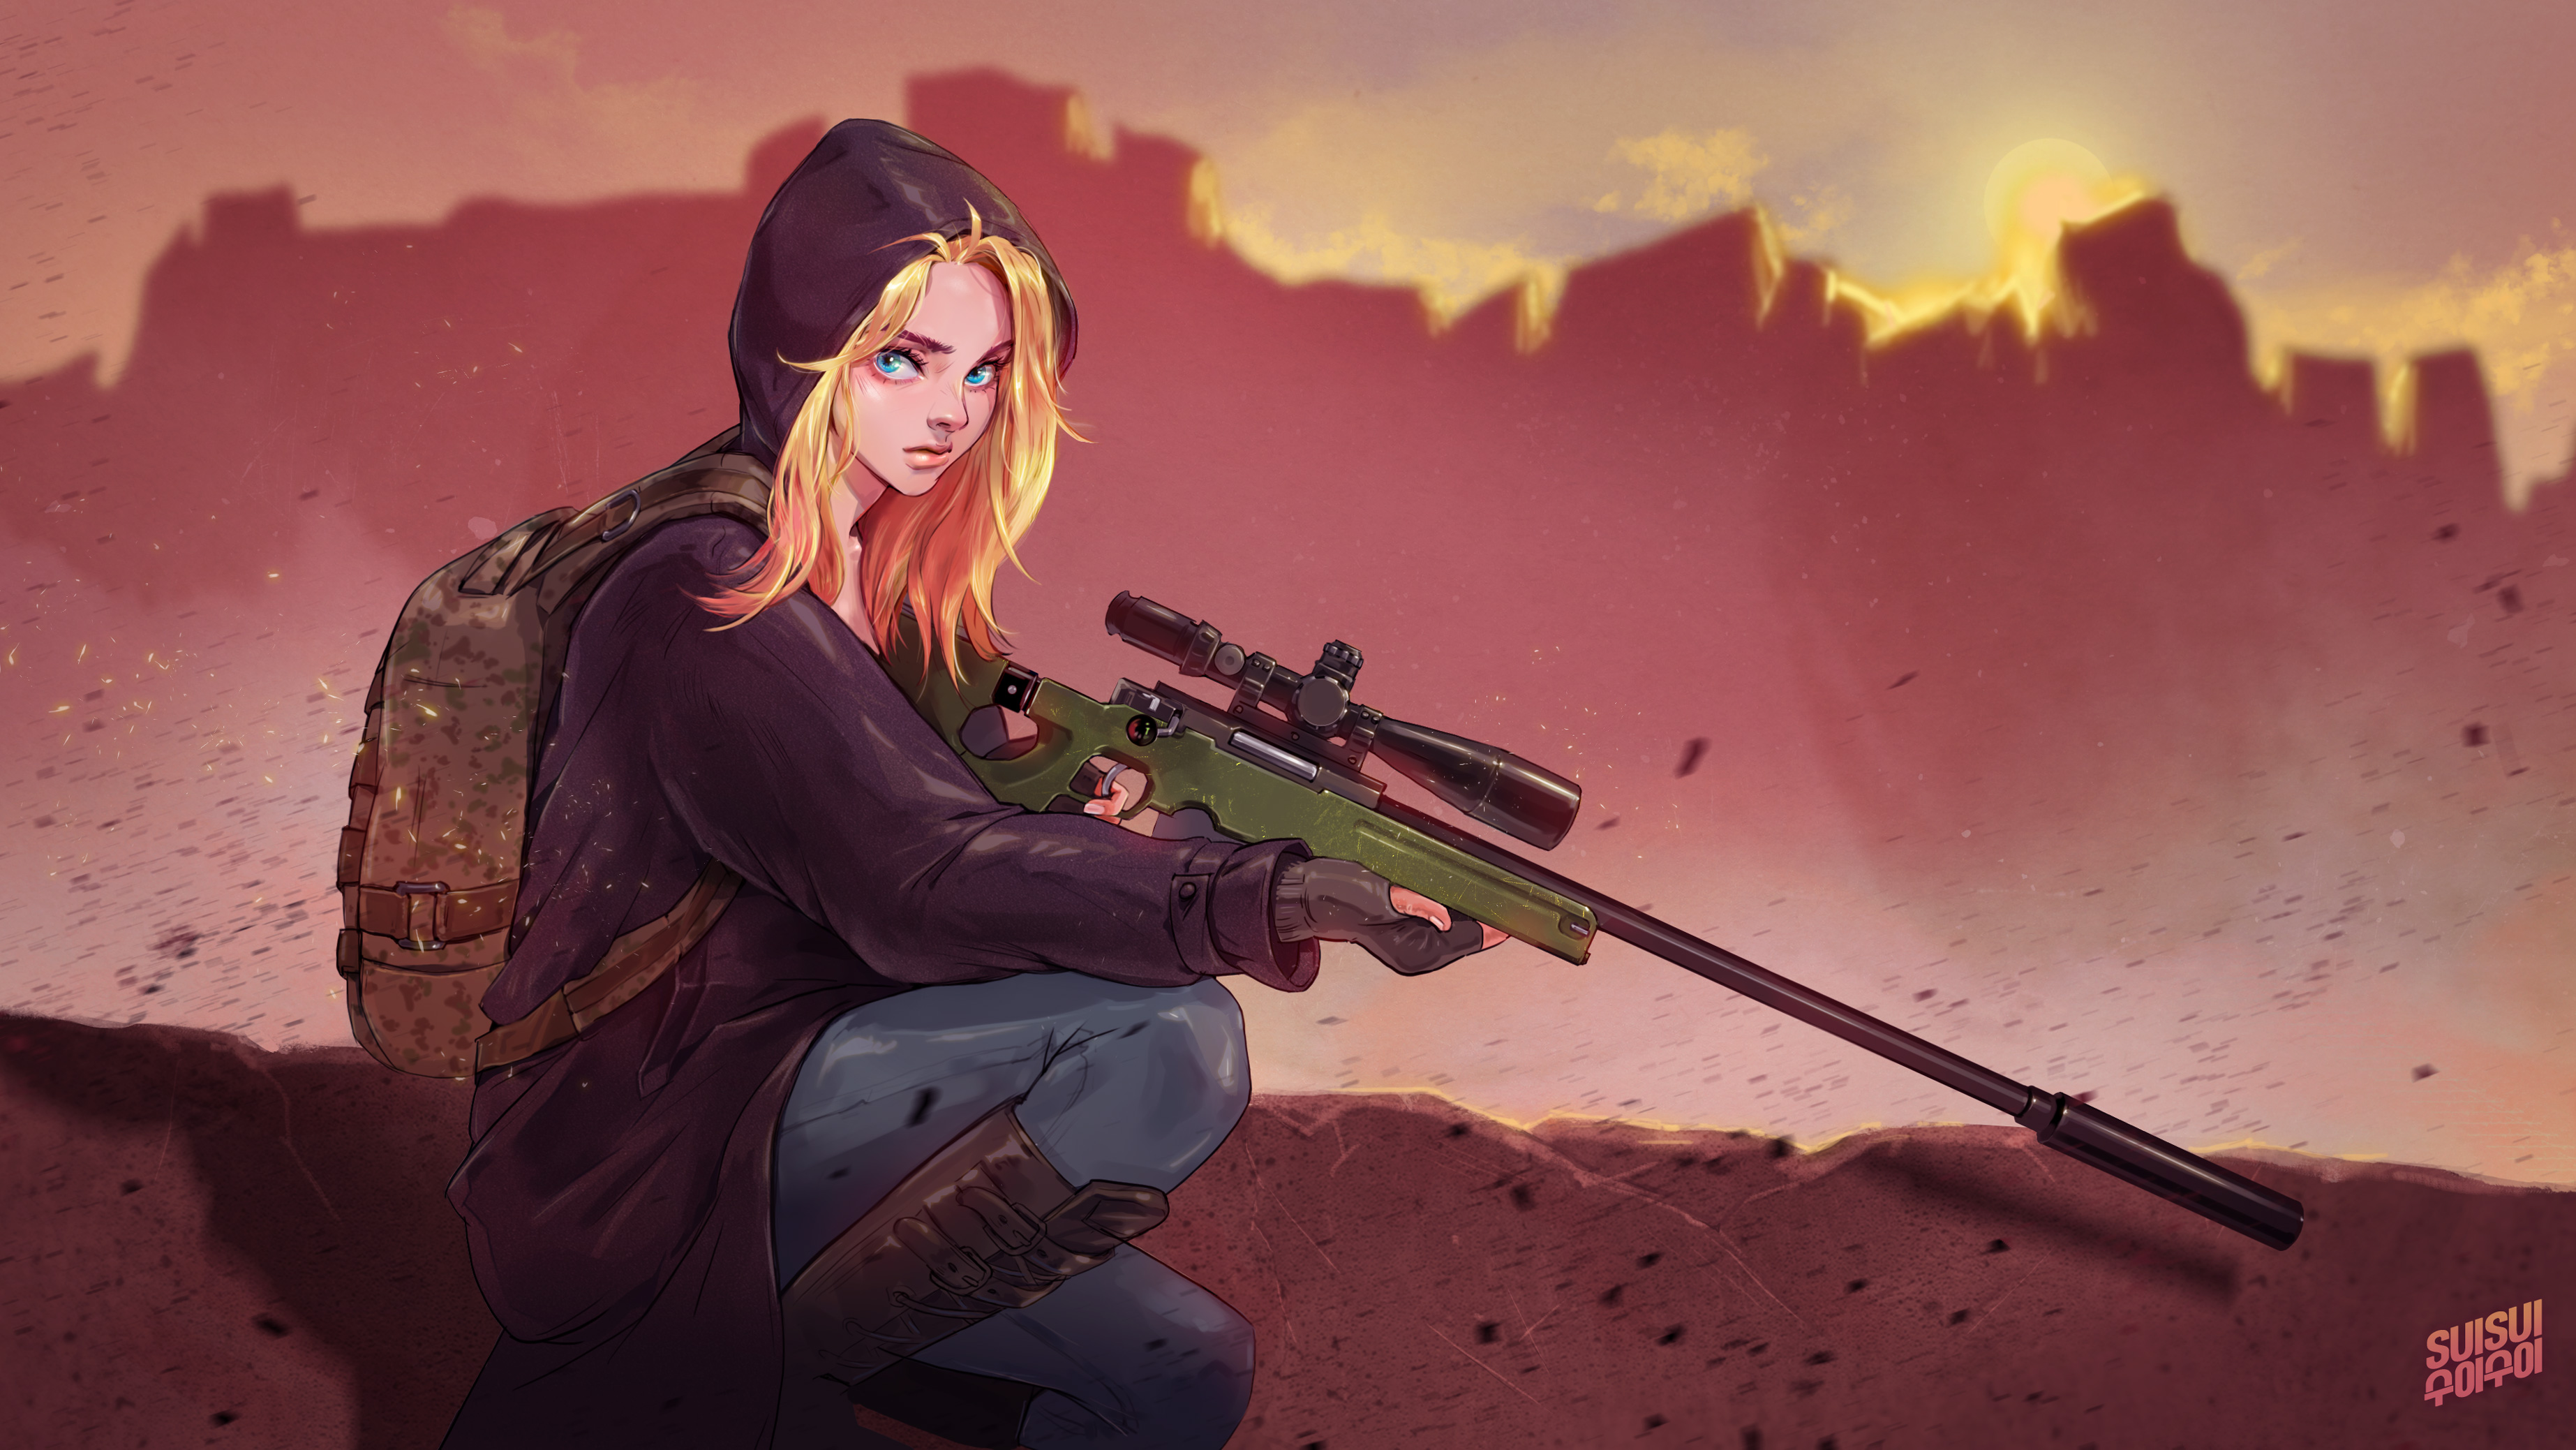 Pubg Wallpaper Hd Pic: Pubg Game Girl Fanart, HD Games, 4k Wallpapers, Images